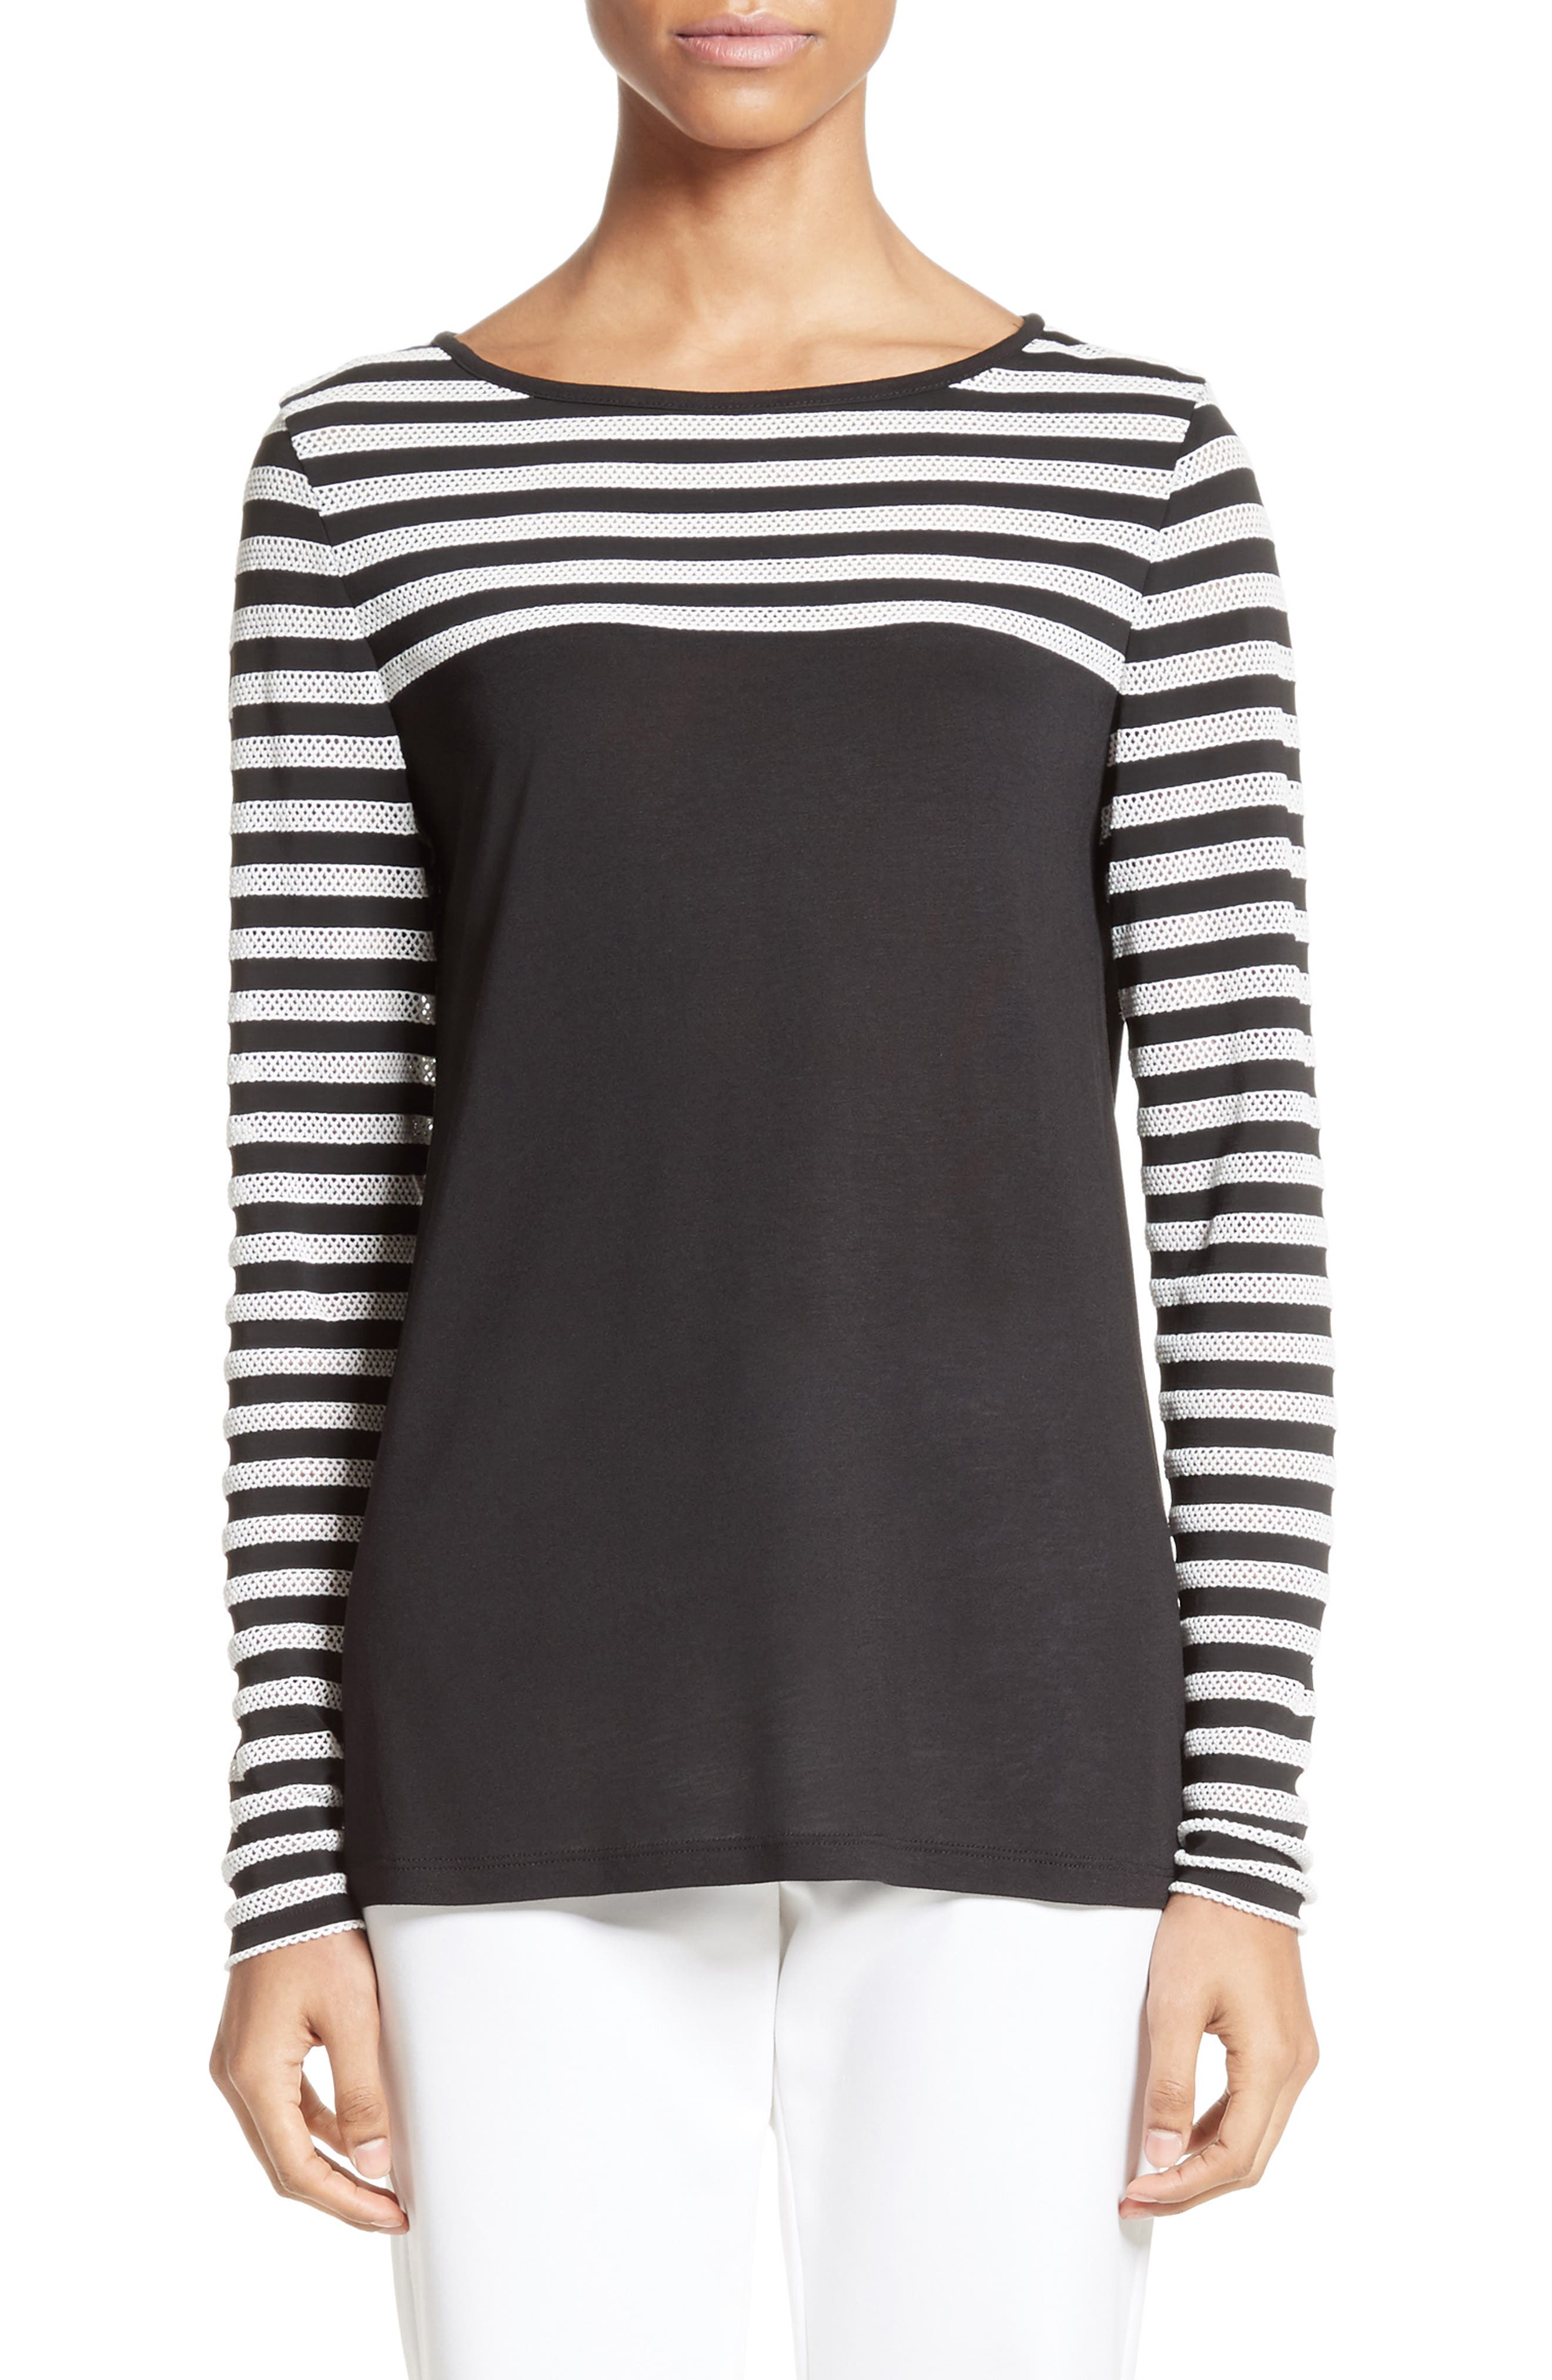 Alternate Image 1 Selected - St. John Collection Stripe Mesh Inset Top